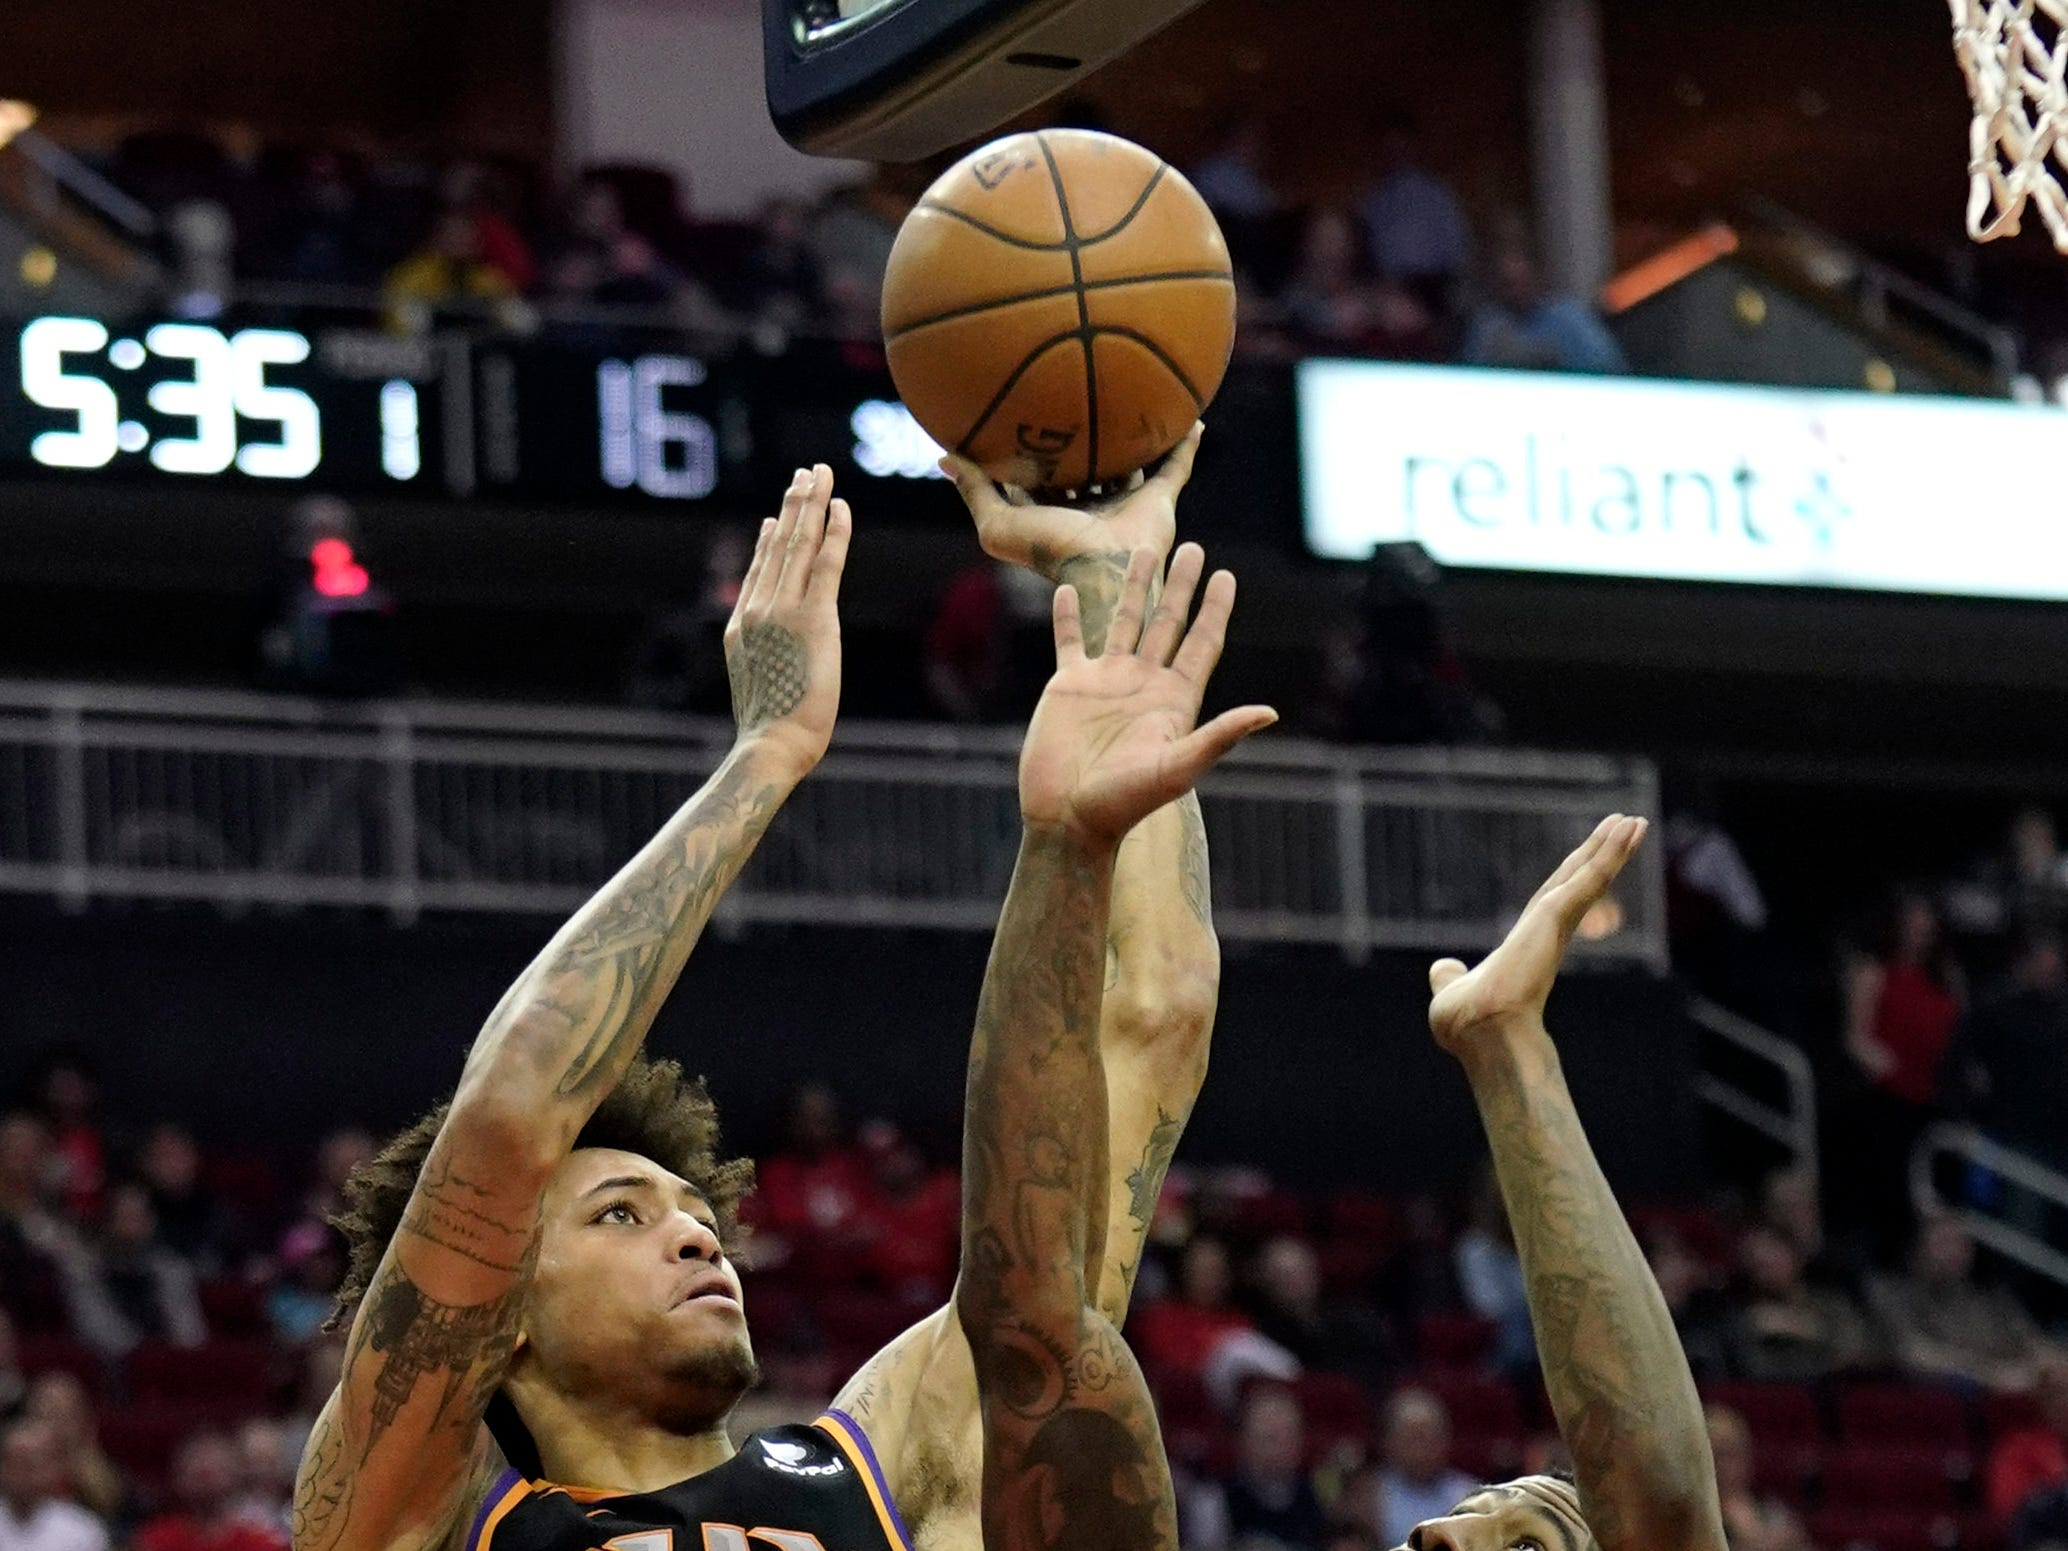 Phoenix Suns' Kelly Oubre Jr. (3) shoots as Houston Rockets' Iman Shumpert (1) defends during the first half of an NBA basketball game Friday, March 15, 2019, in Houston. (AP Photo/David J. Phillip)